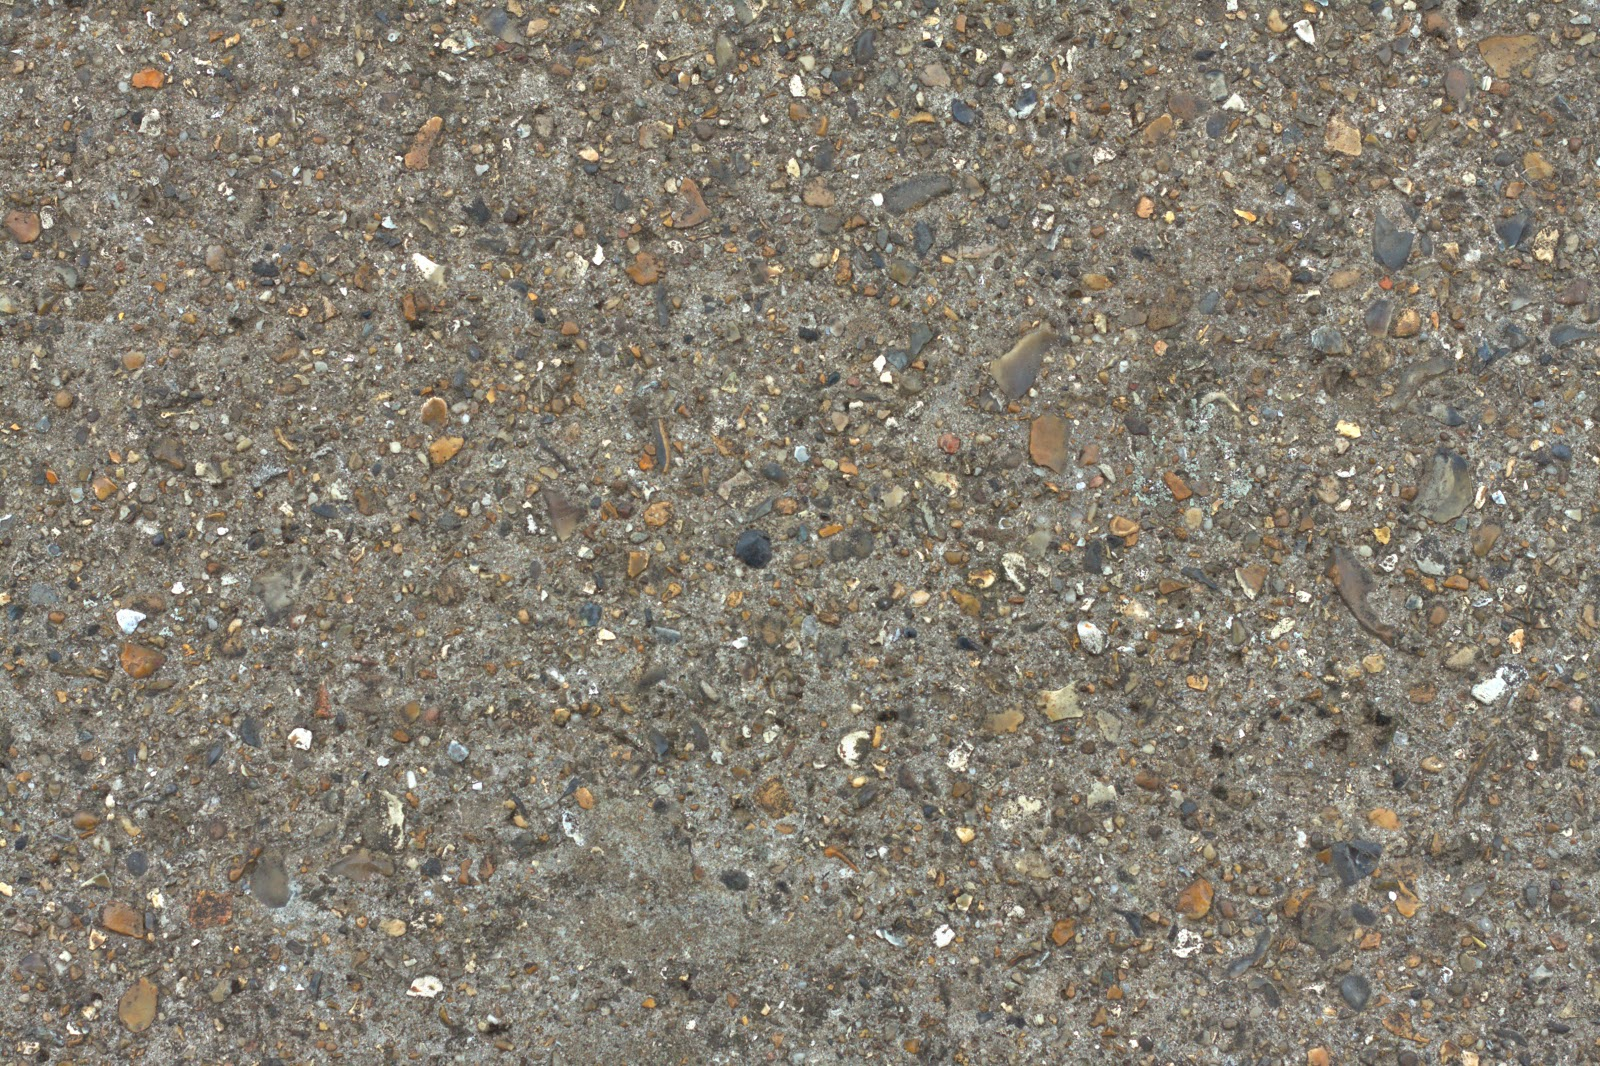 (Concrete cobble stone 4) pebble walkway texture 4770x3178